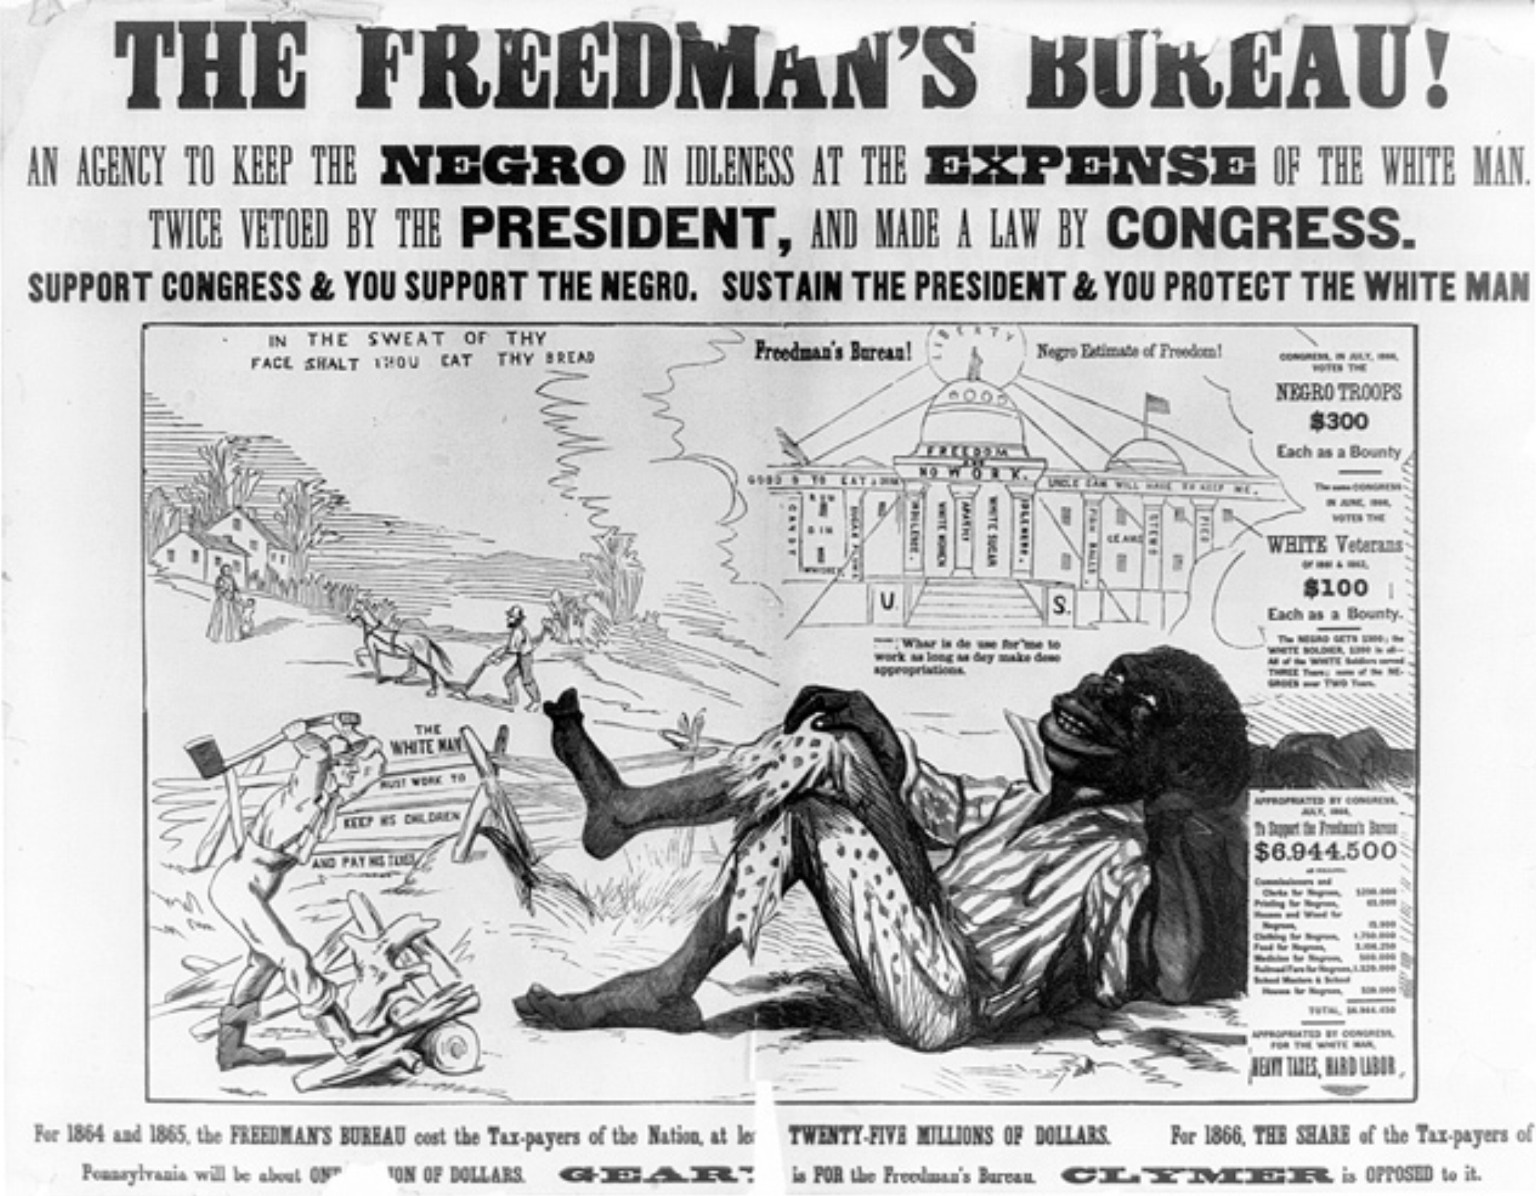 did president andrew johnson help or hinder the process of reconstruction after the civil war On february 24, 1868, something extraordinary happened in the united states congress.